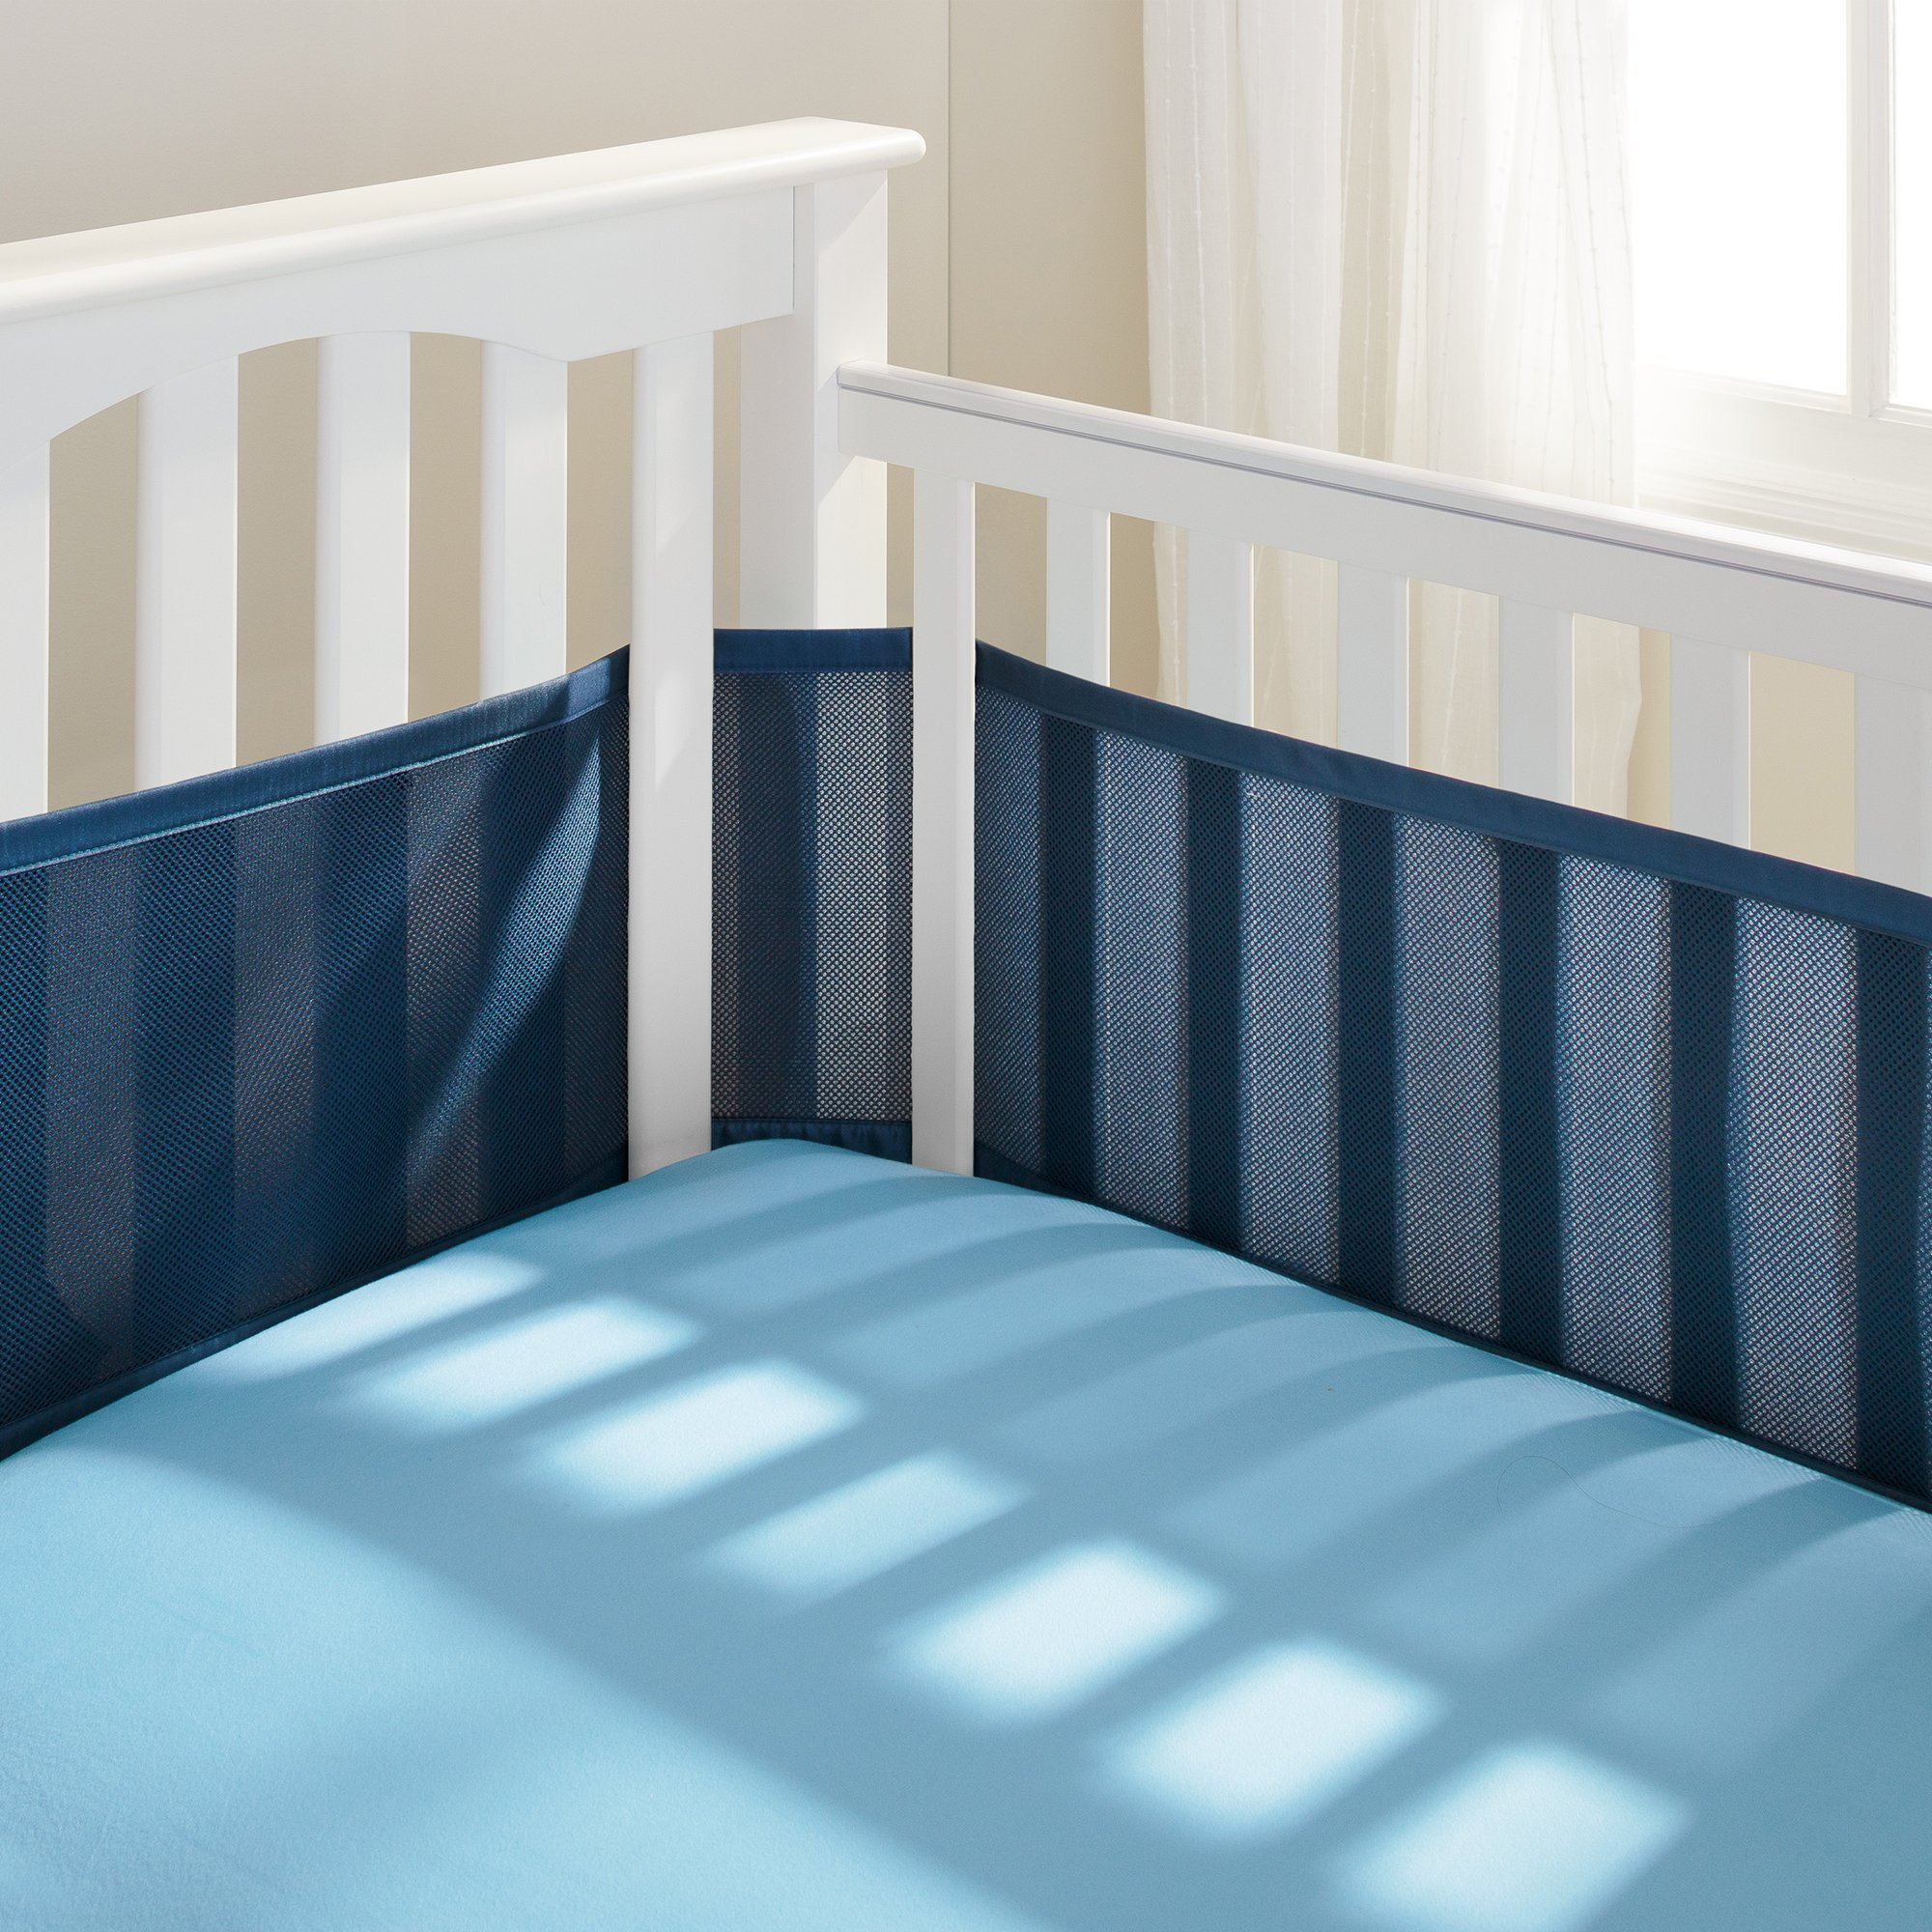 Baby Breathable Pad Crib Bumper Pad Prevents Babies from Getting Stuck in Crib Slats Fits 4 Sided Slatted /& Solid Back Cribs